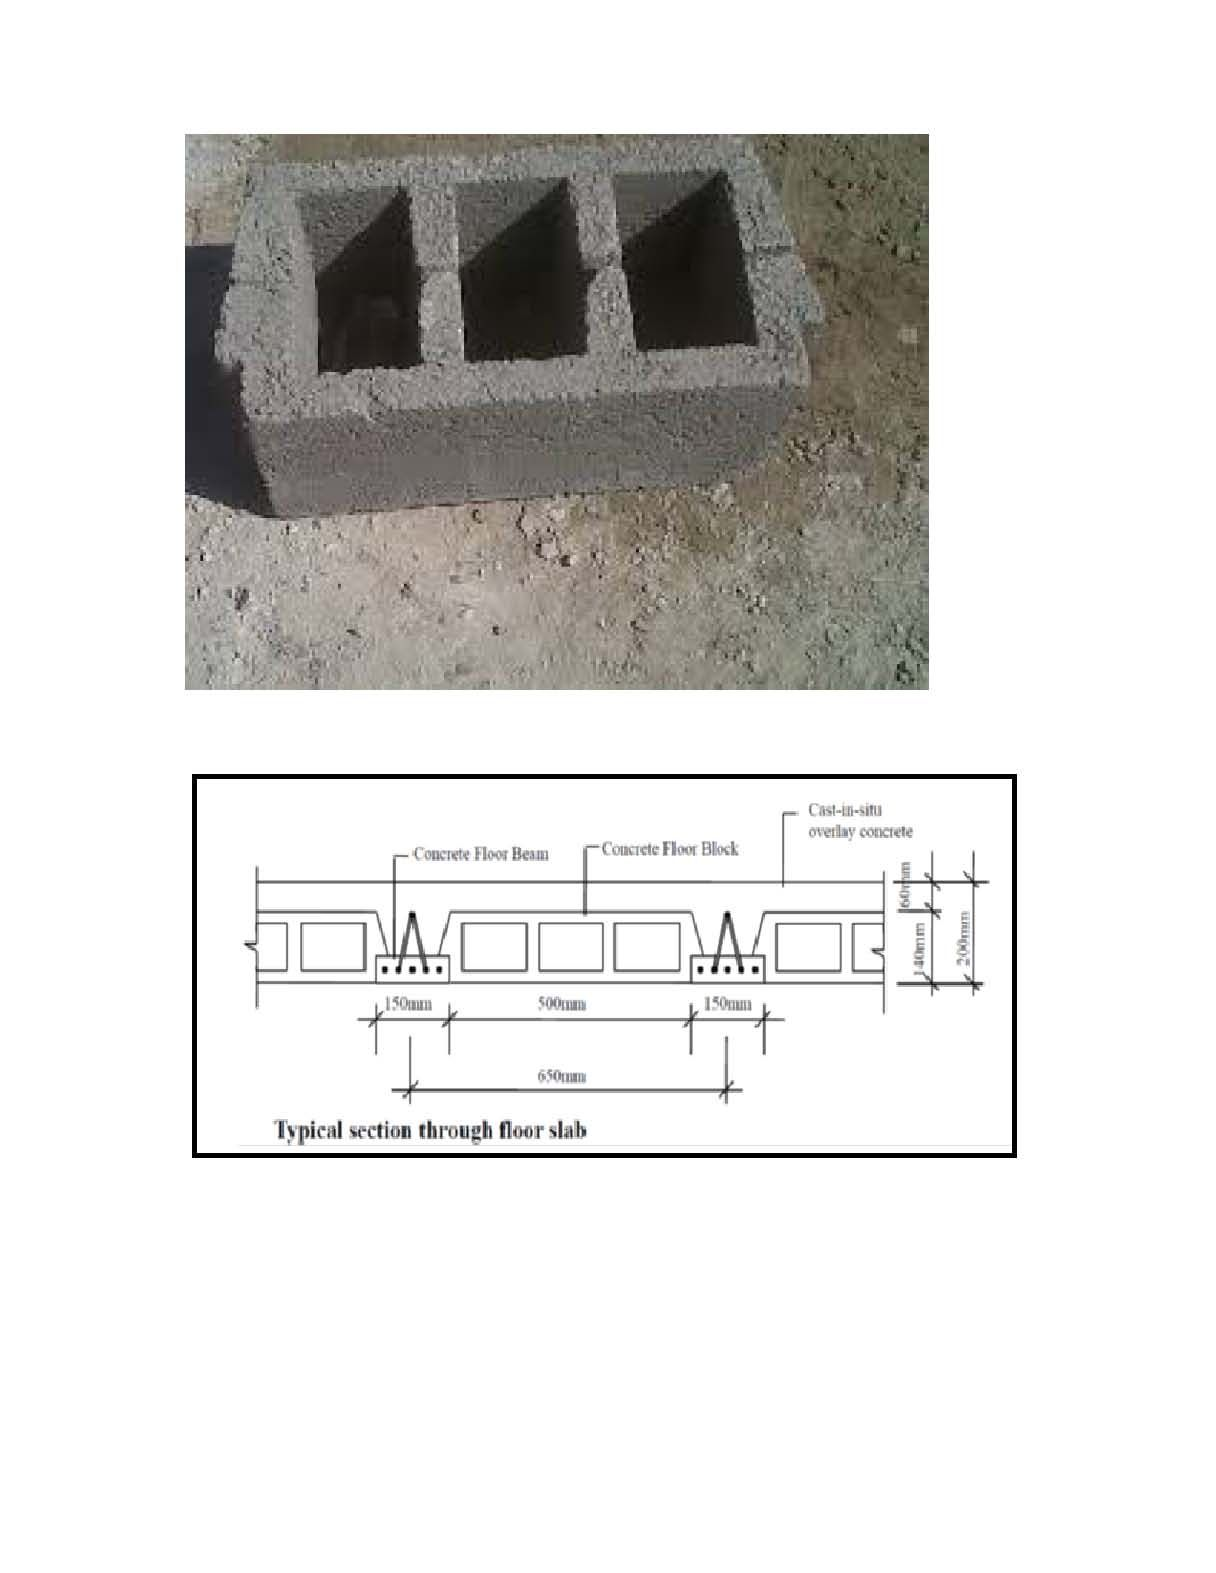 Hourdis Dimension Size Design And Drawing Hourdis Also Call Concrete Hollow Pot Block Deck Block Concrete Roof Slab It Bel House Roof Concrete Floors Roof